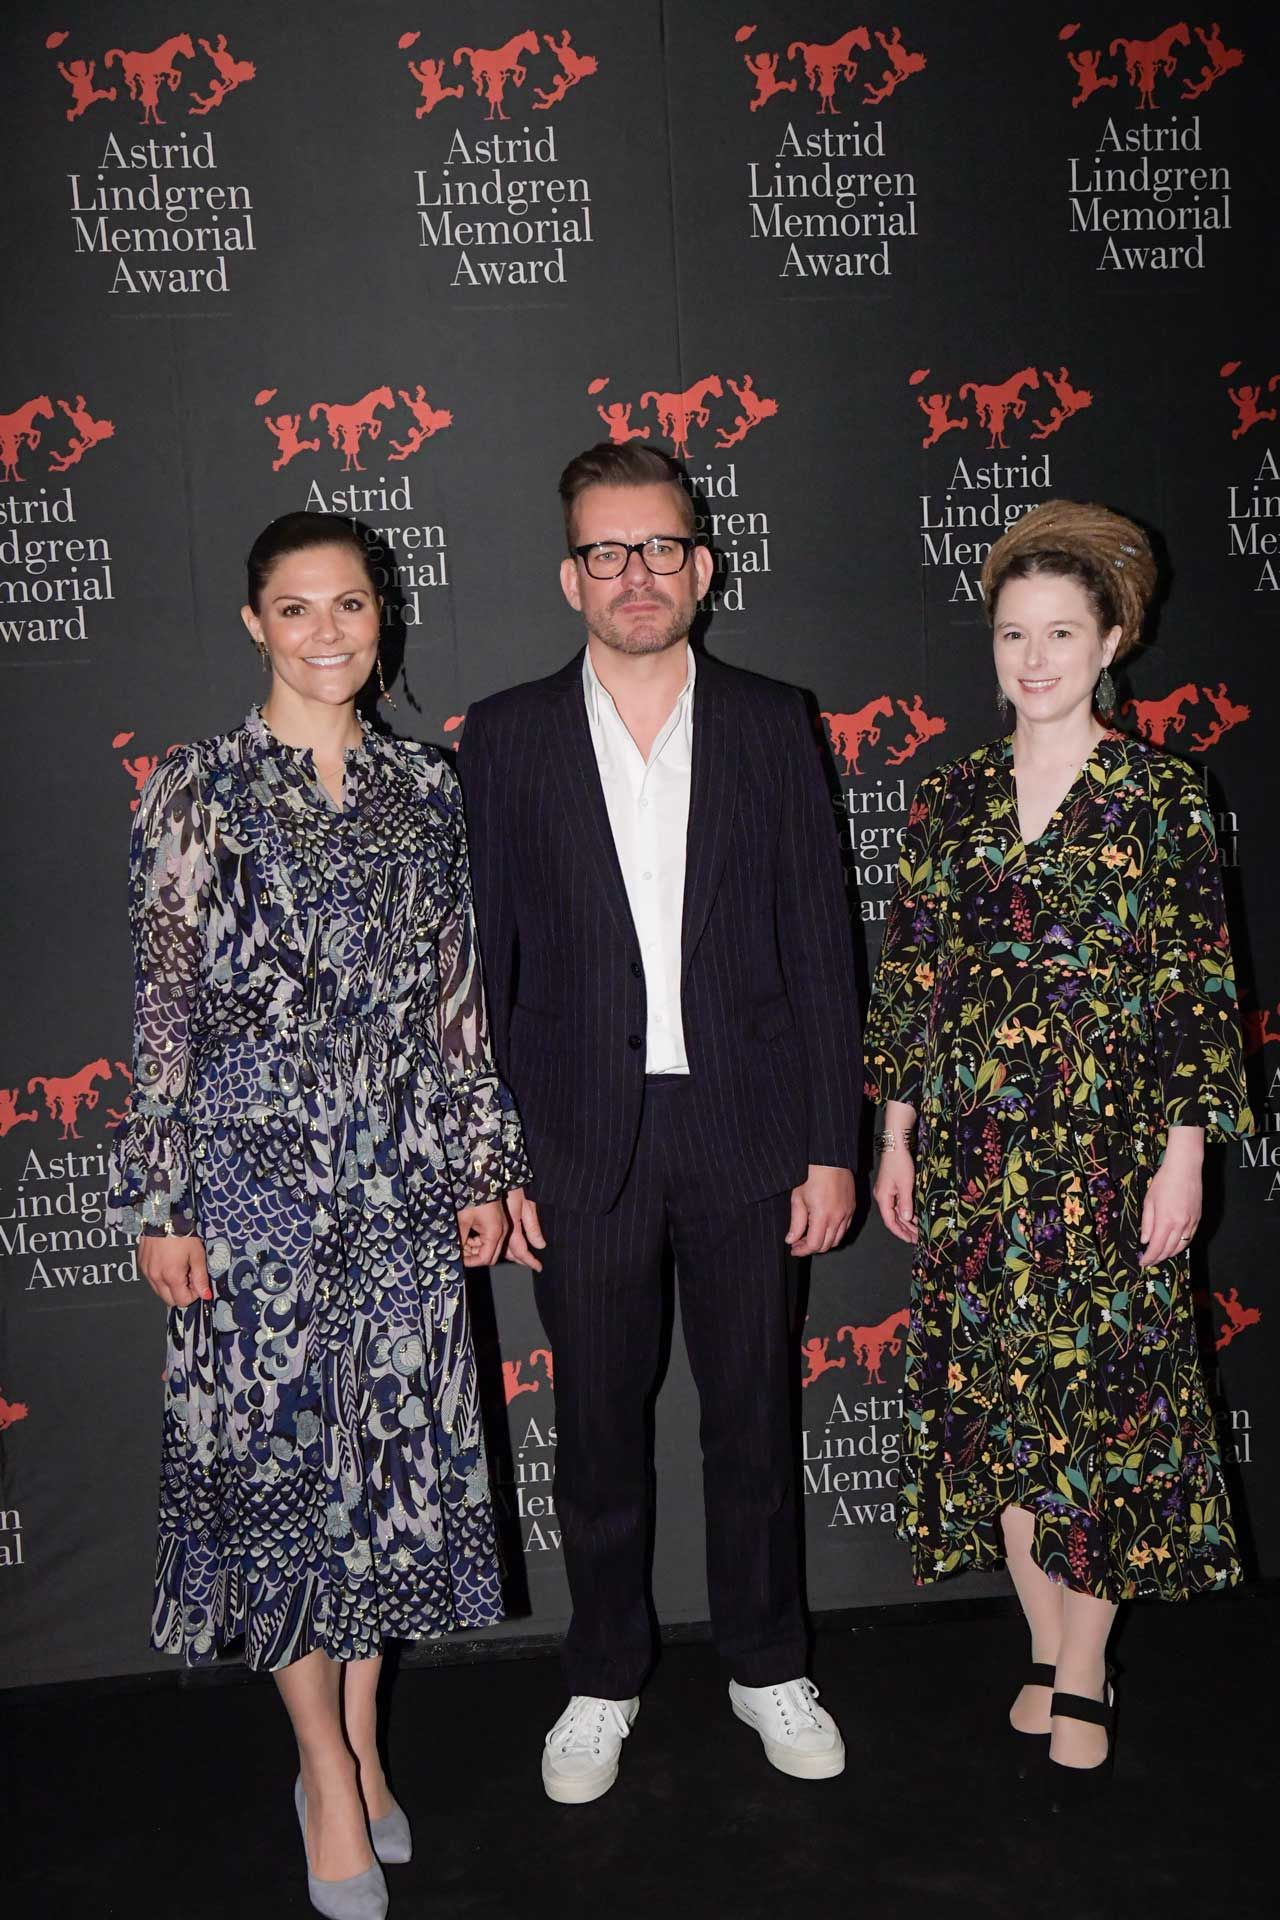 Amanda Lind crown princess victoria attends awards ceremony | crown